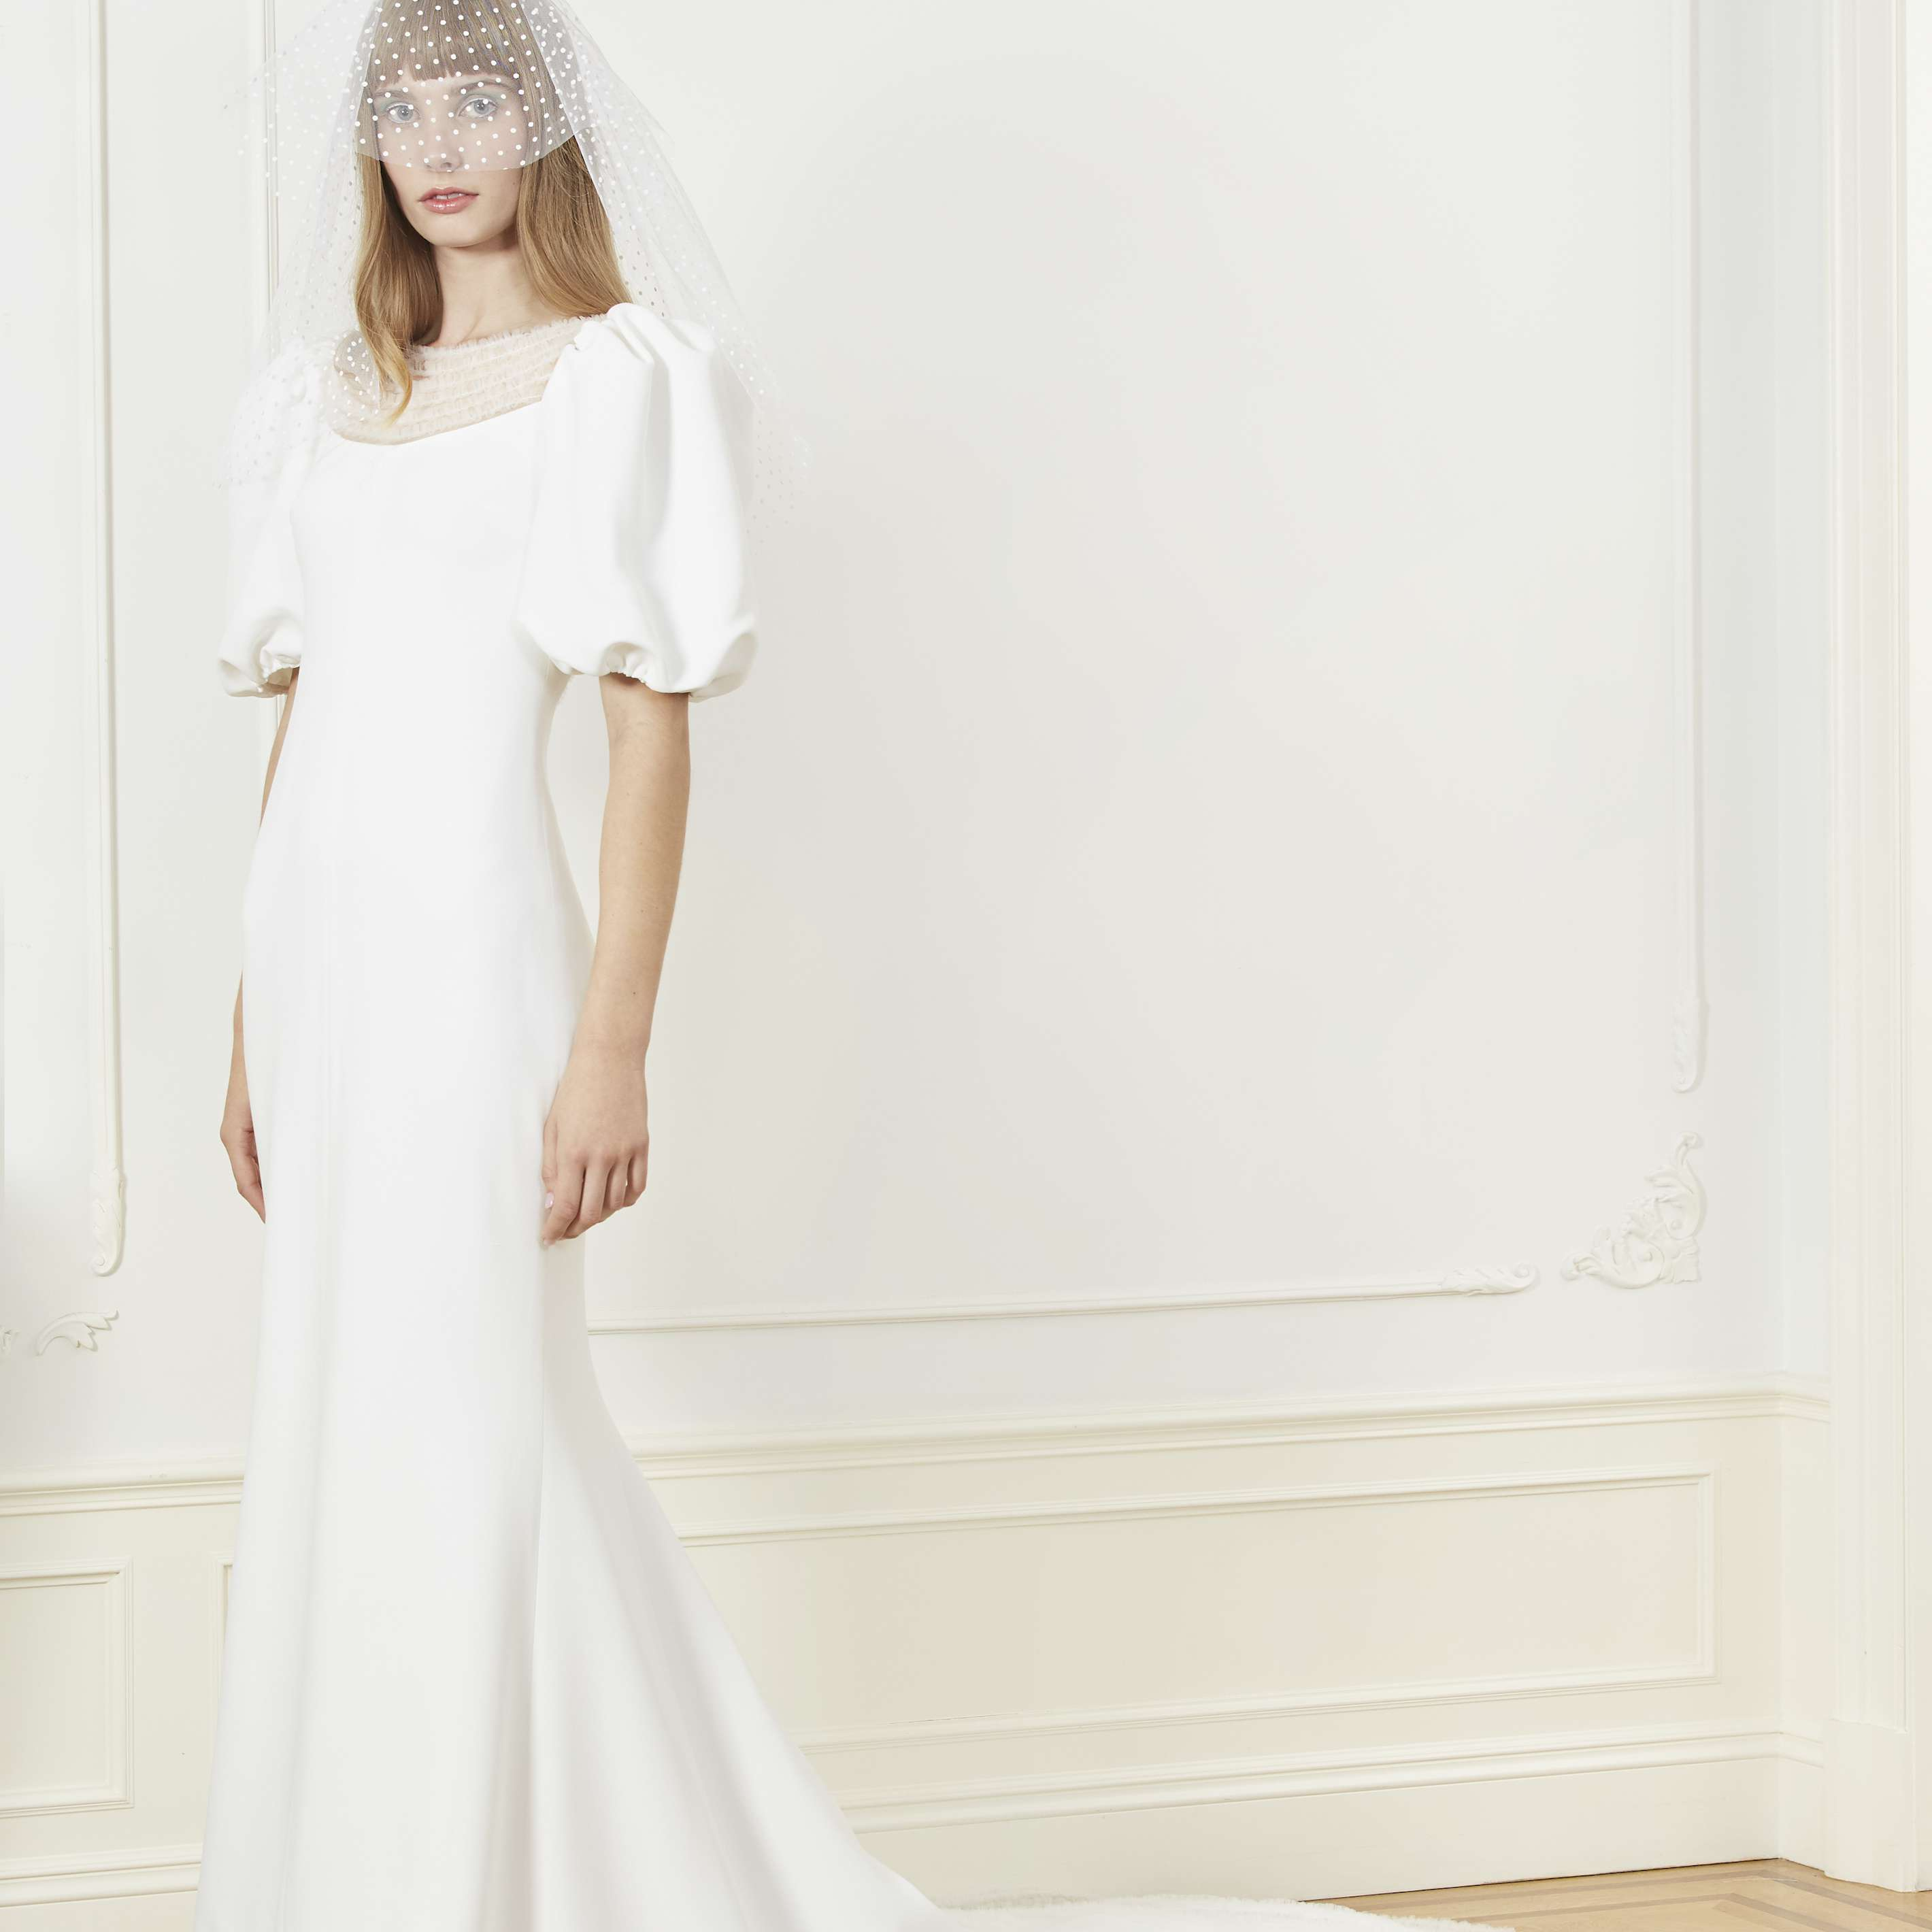 Model in fitted wedding dress with puff sleeves